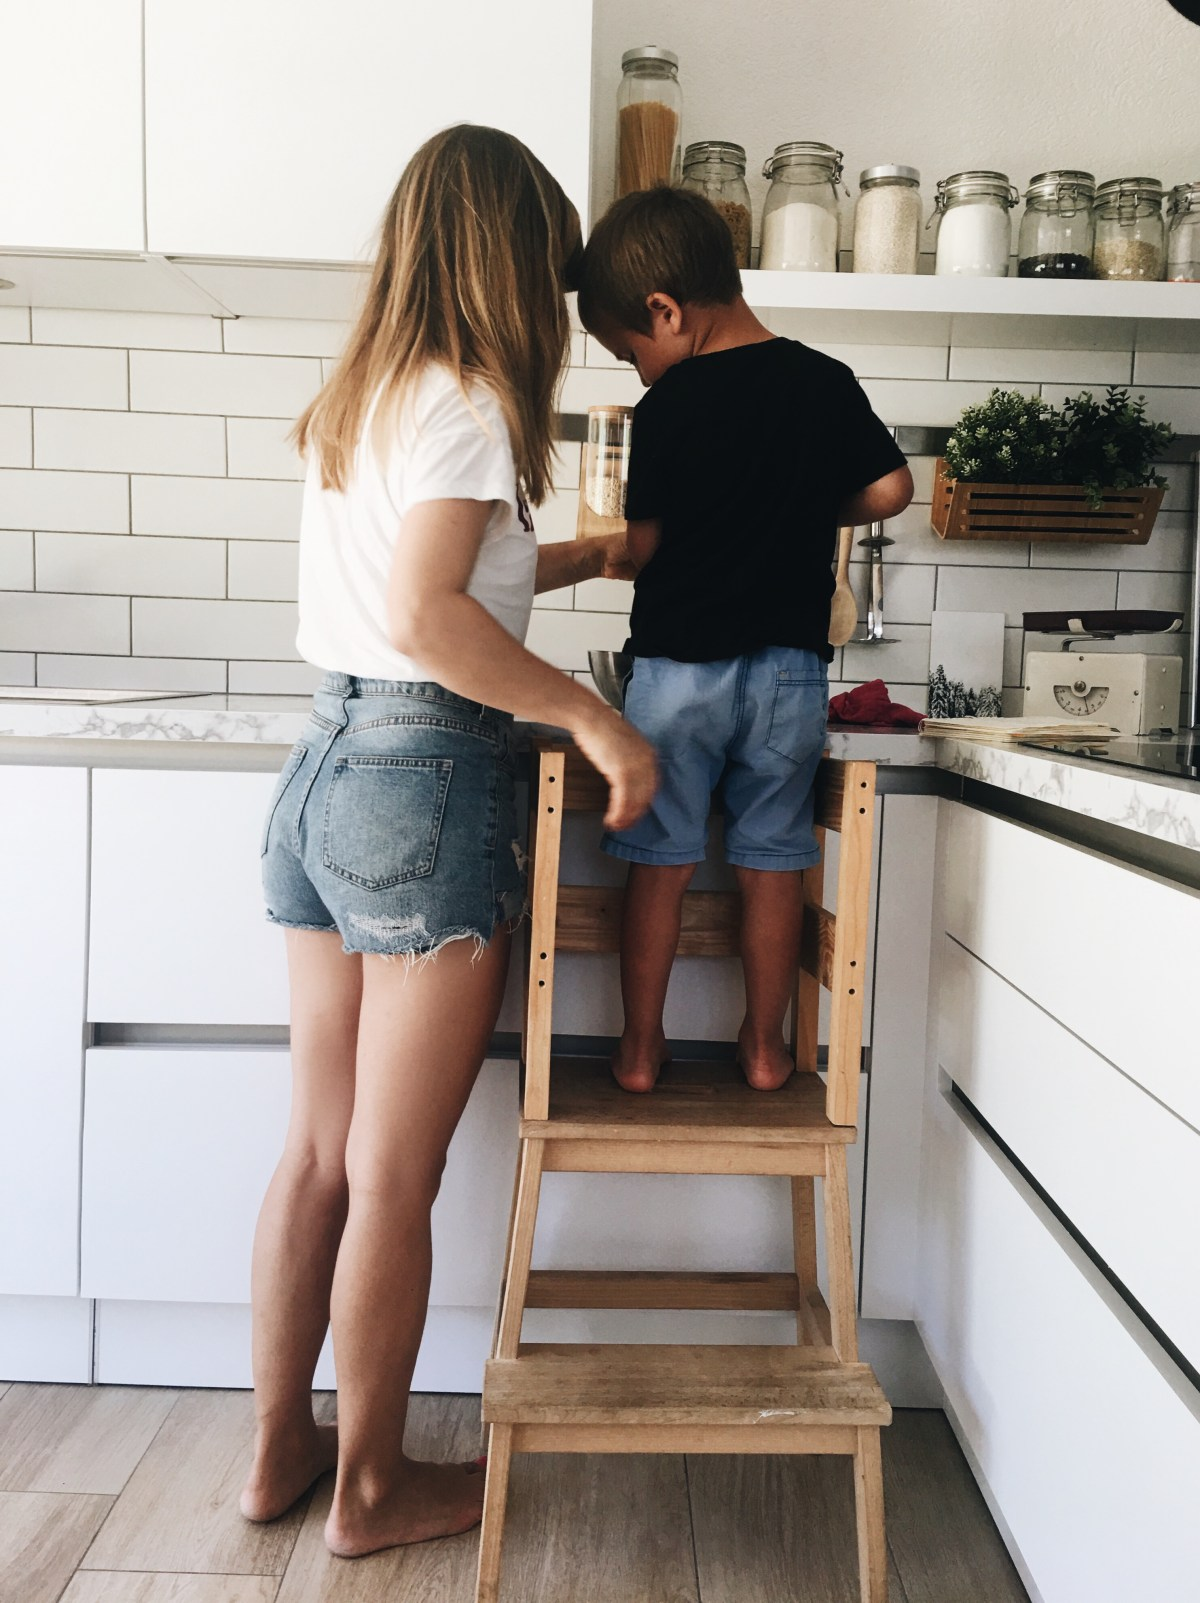 montessori tour diy ikea blog maman suisse theresandthekids